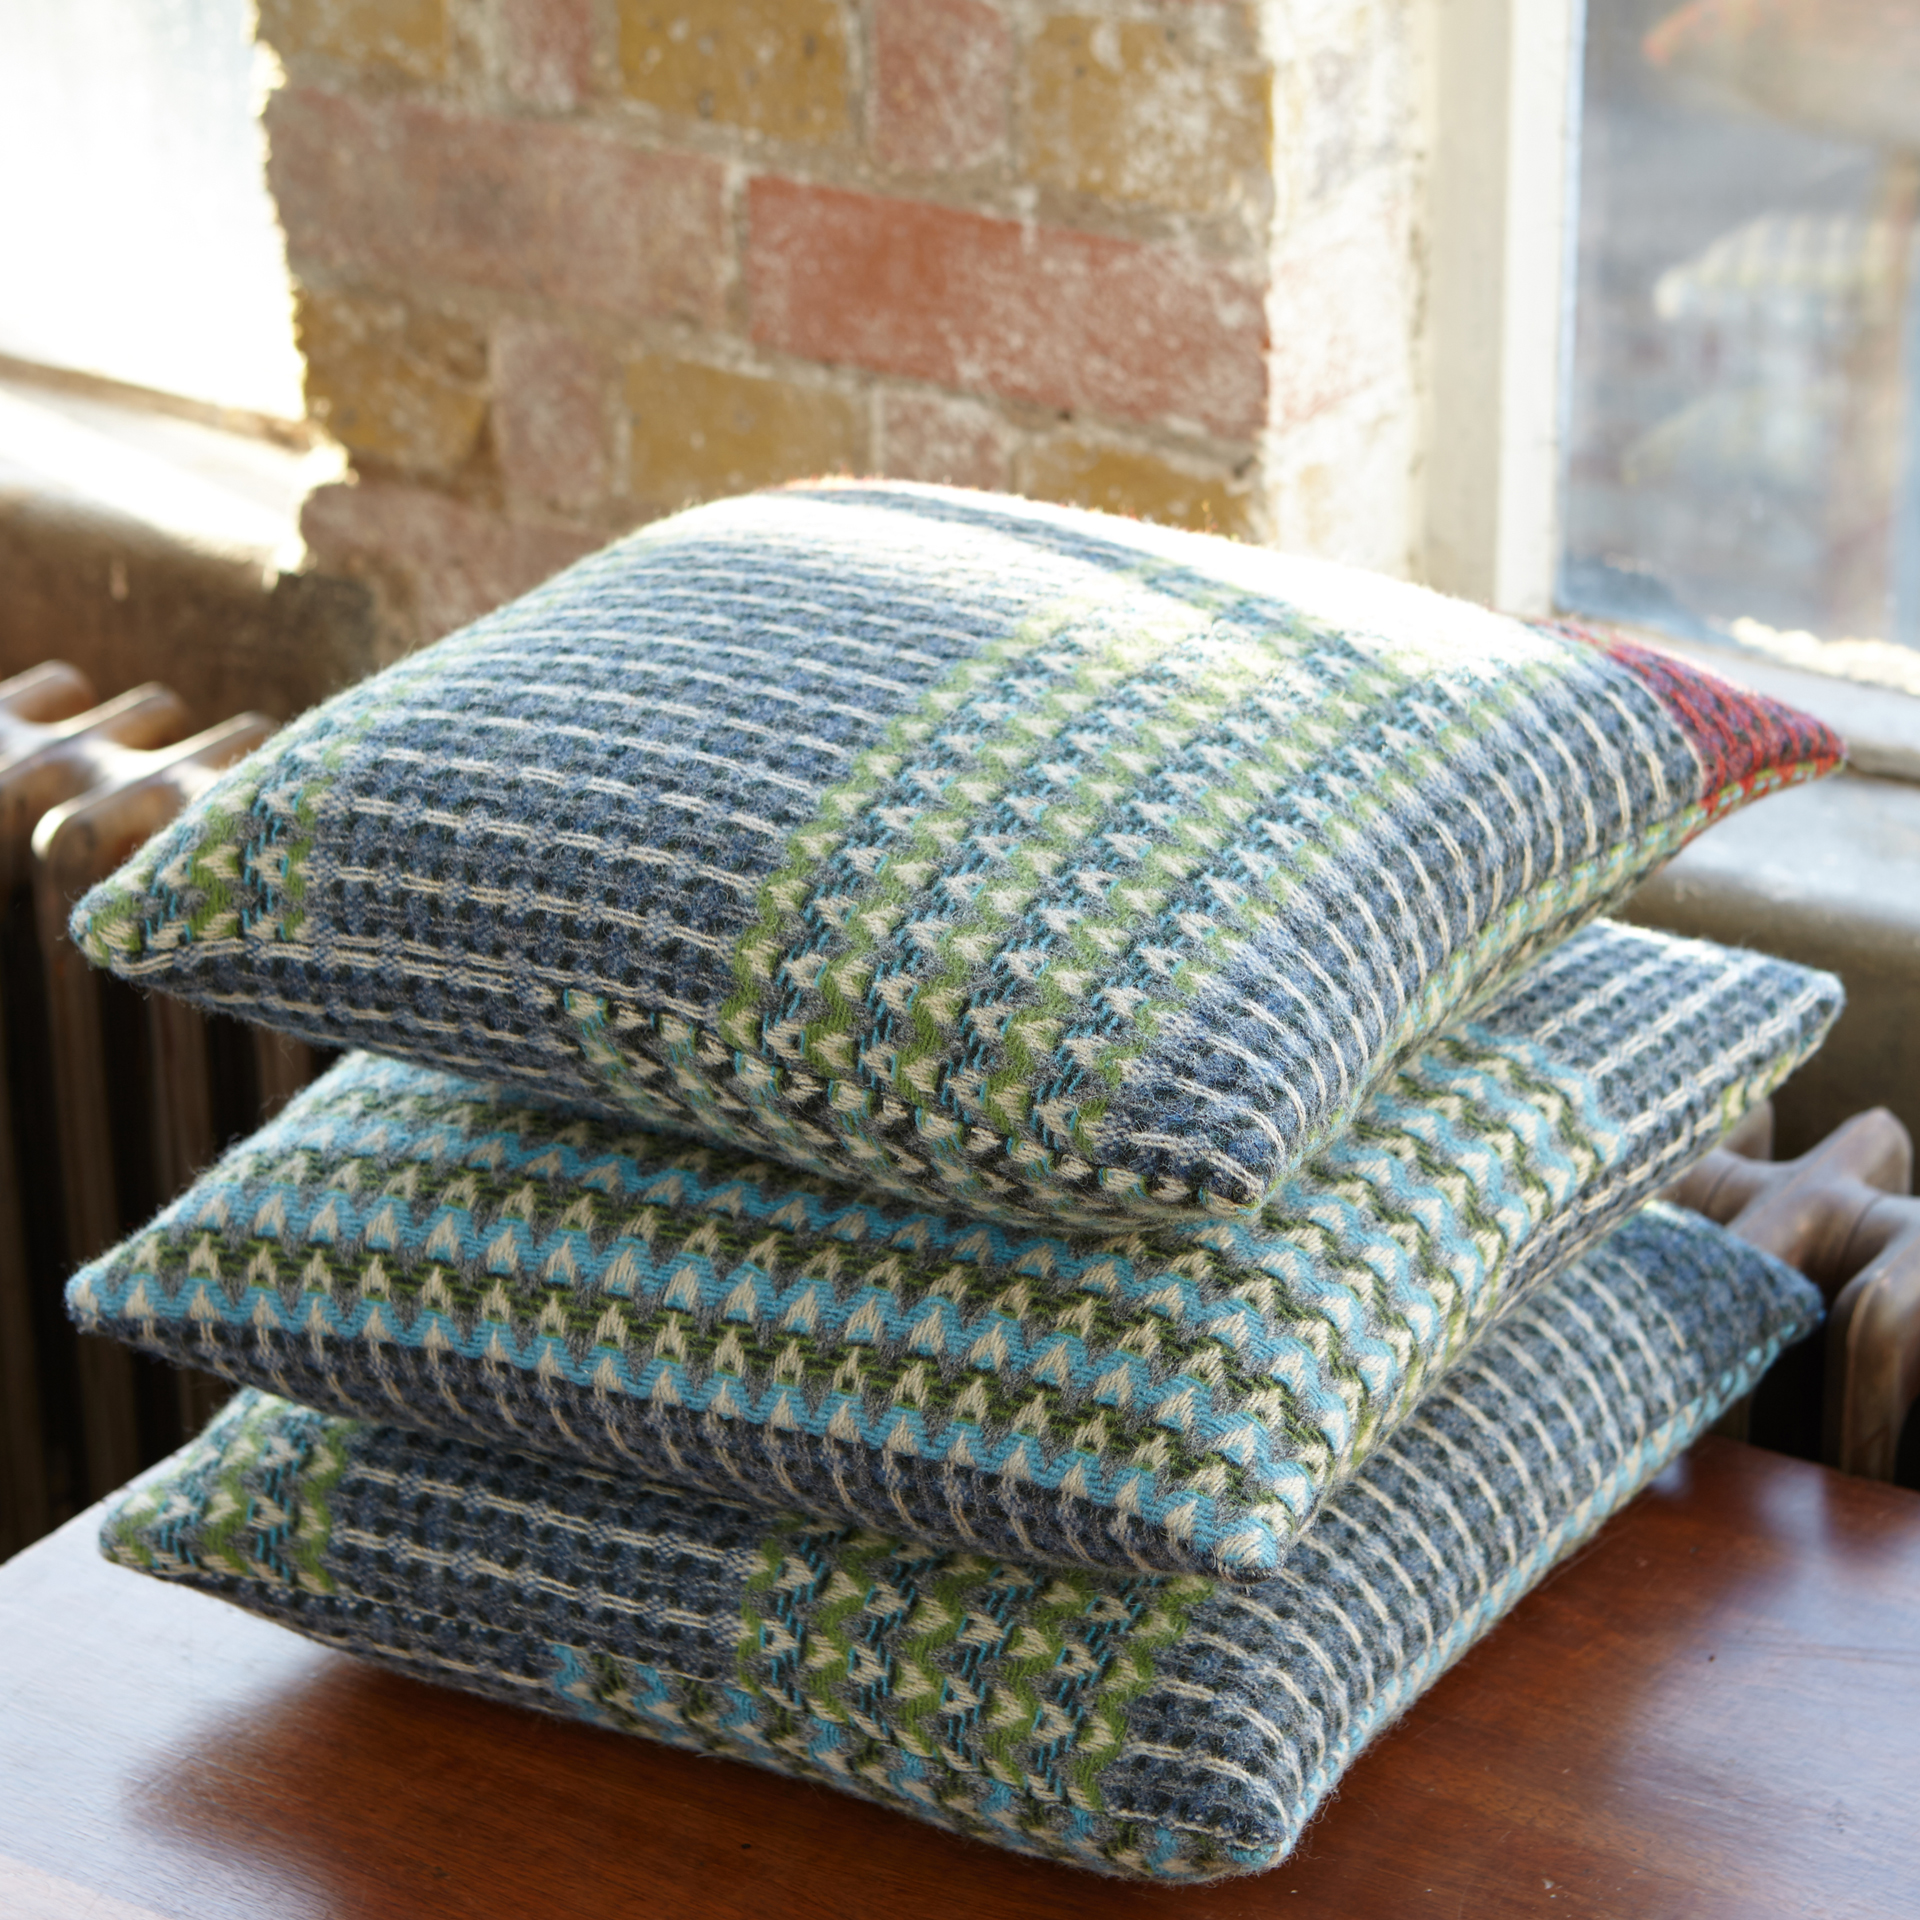 everglade cushions